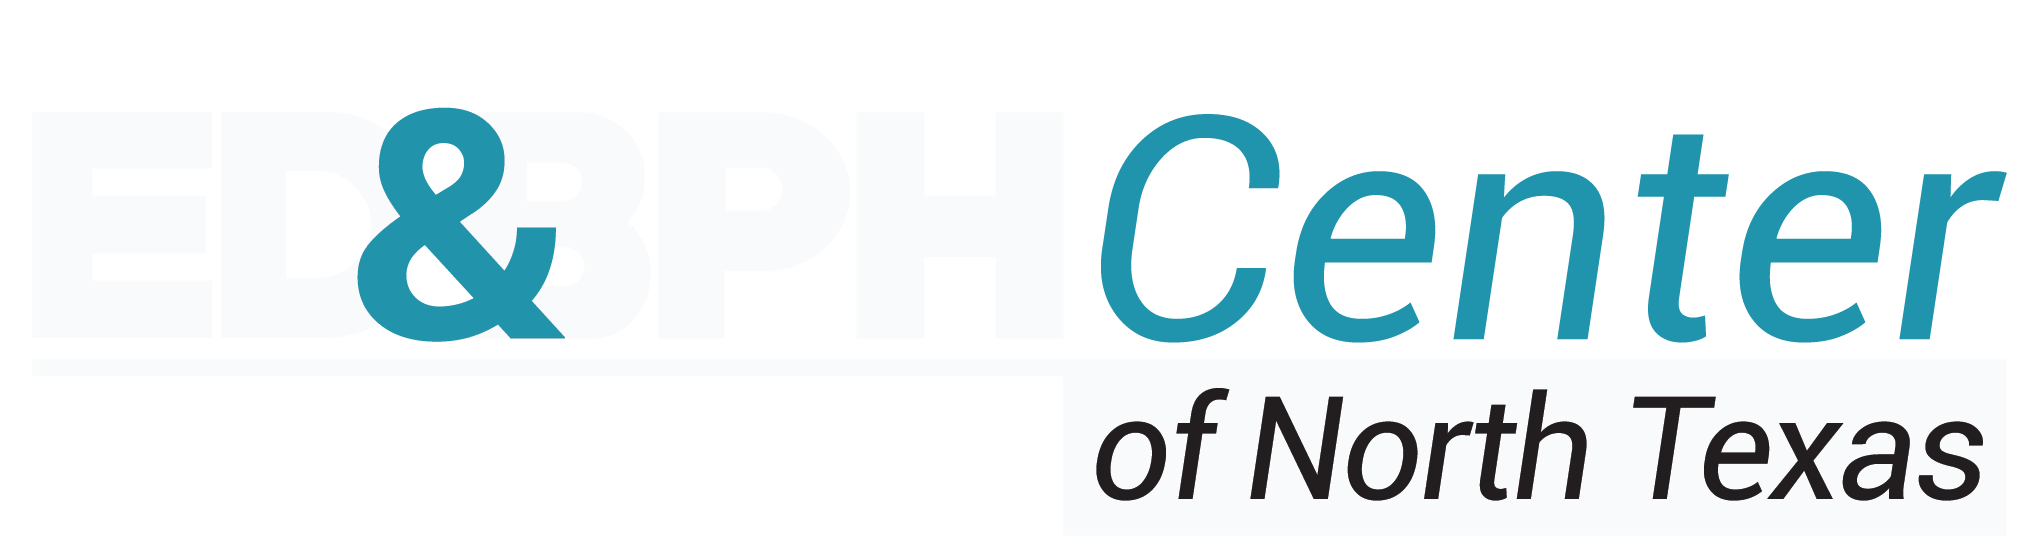 ED & BPH Center of North Texas Logo